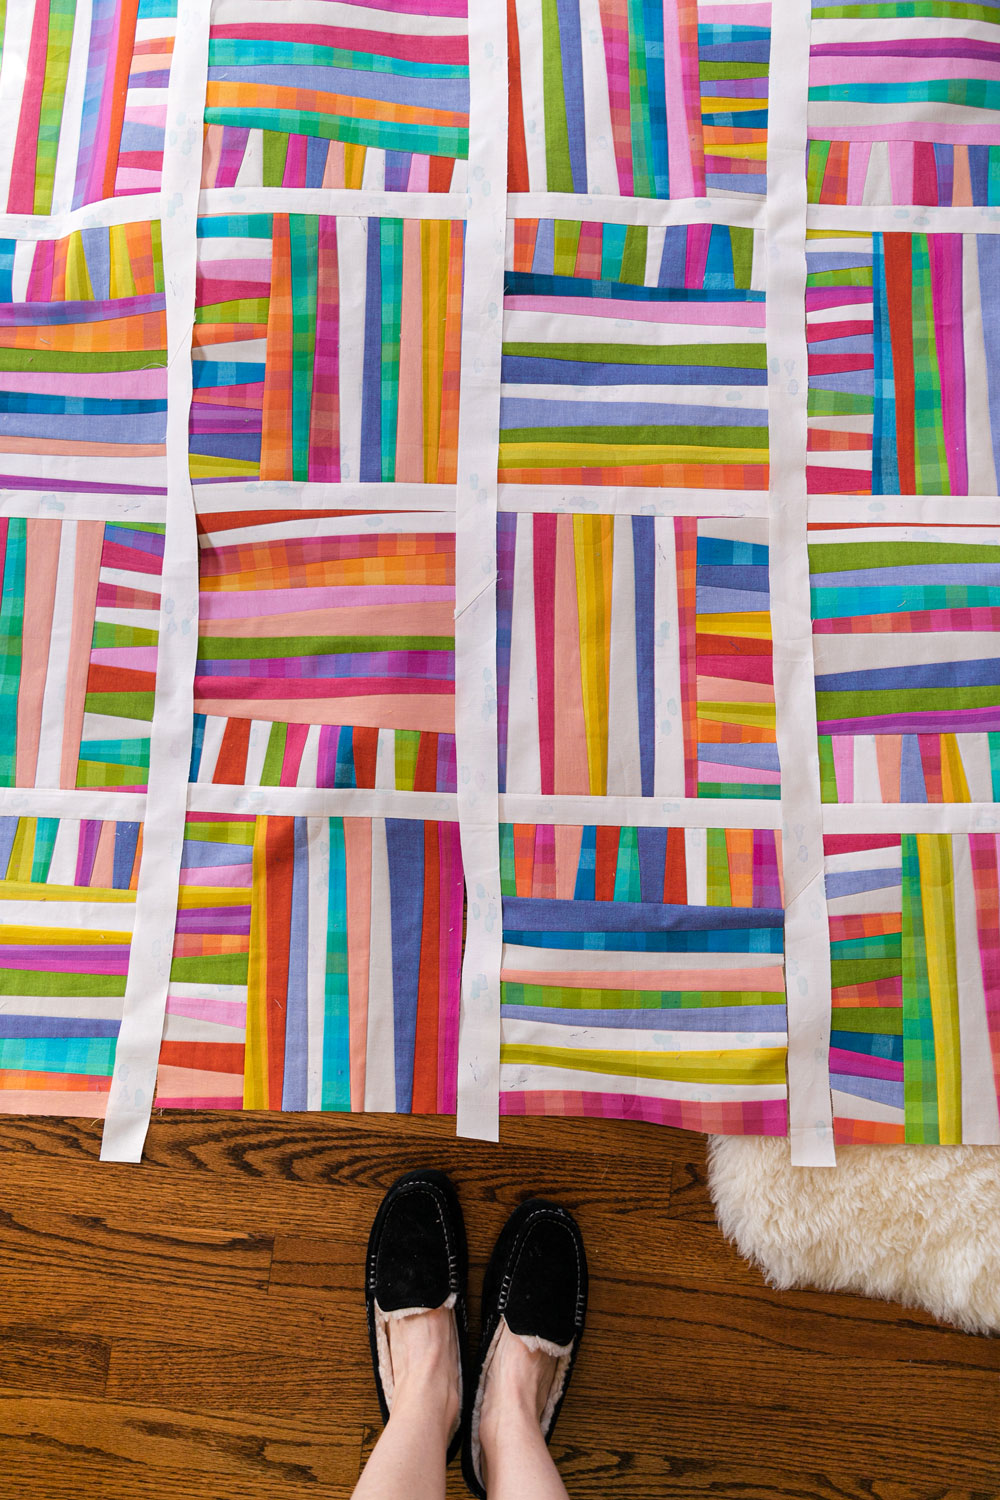 The Shine quilt sew along includes lots of added tips and videos to help you make this modern quilt pattern. This fat quarter quilt pattern is beginner friendly and focuses on improv sewing. suzyquilts.com #fatquarterpattern #quilting